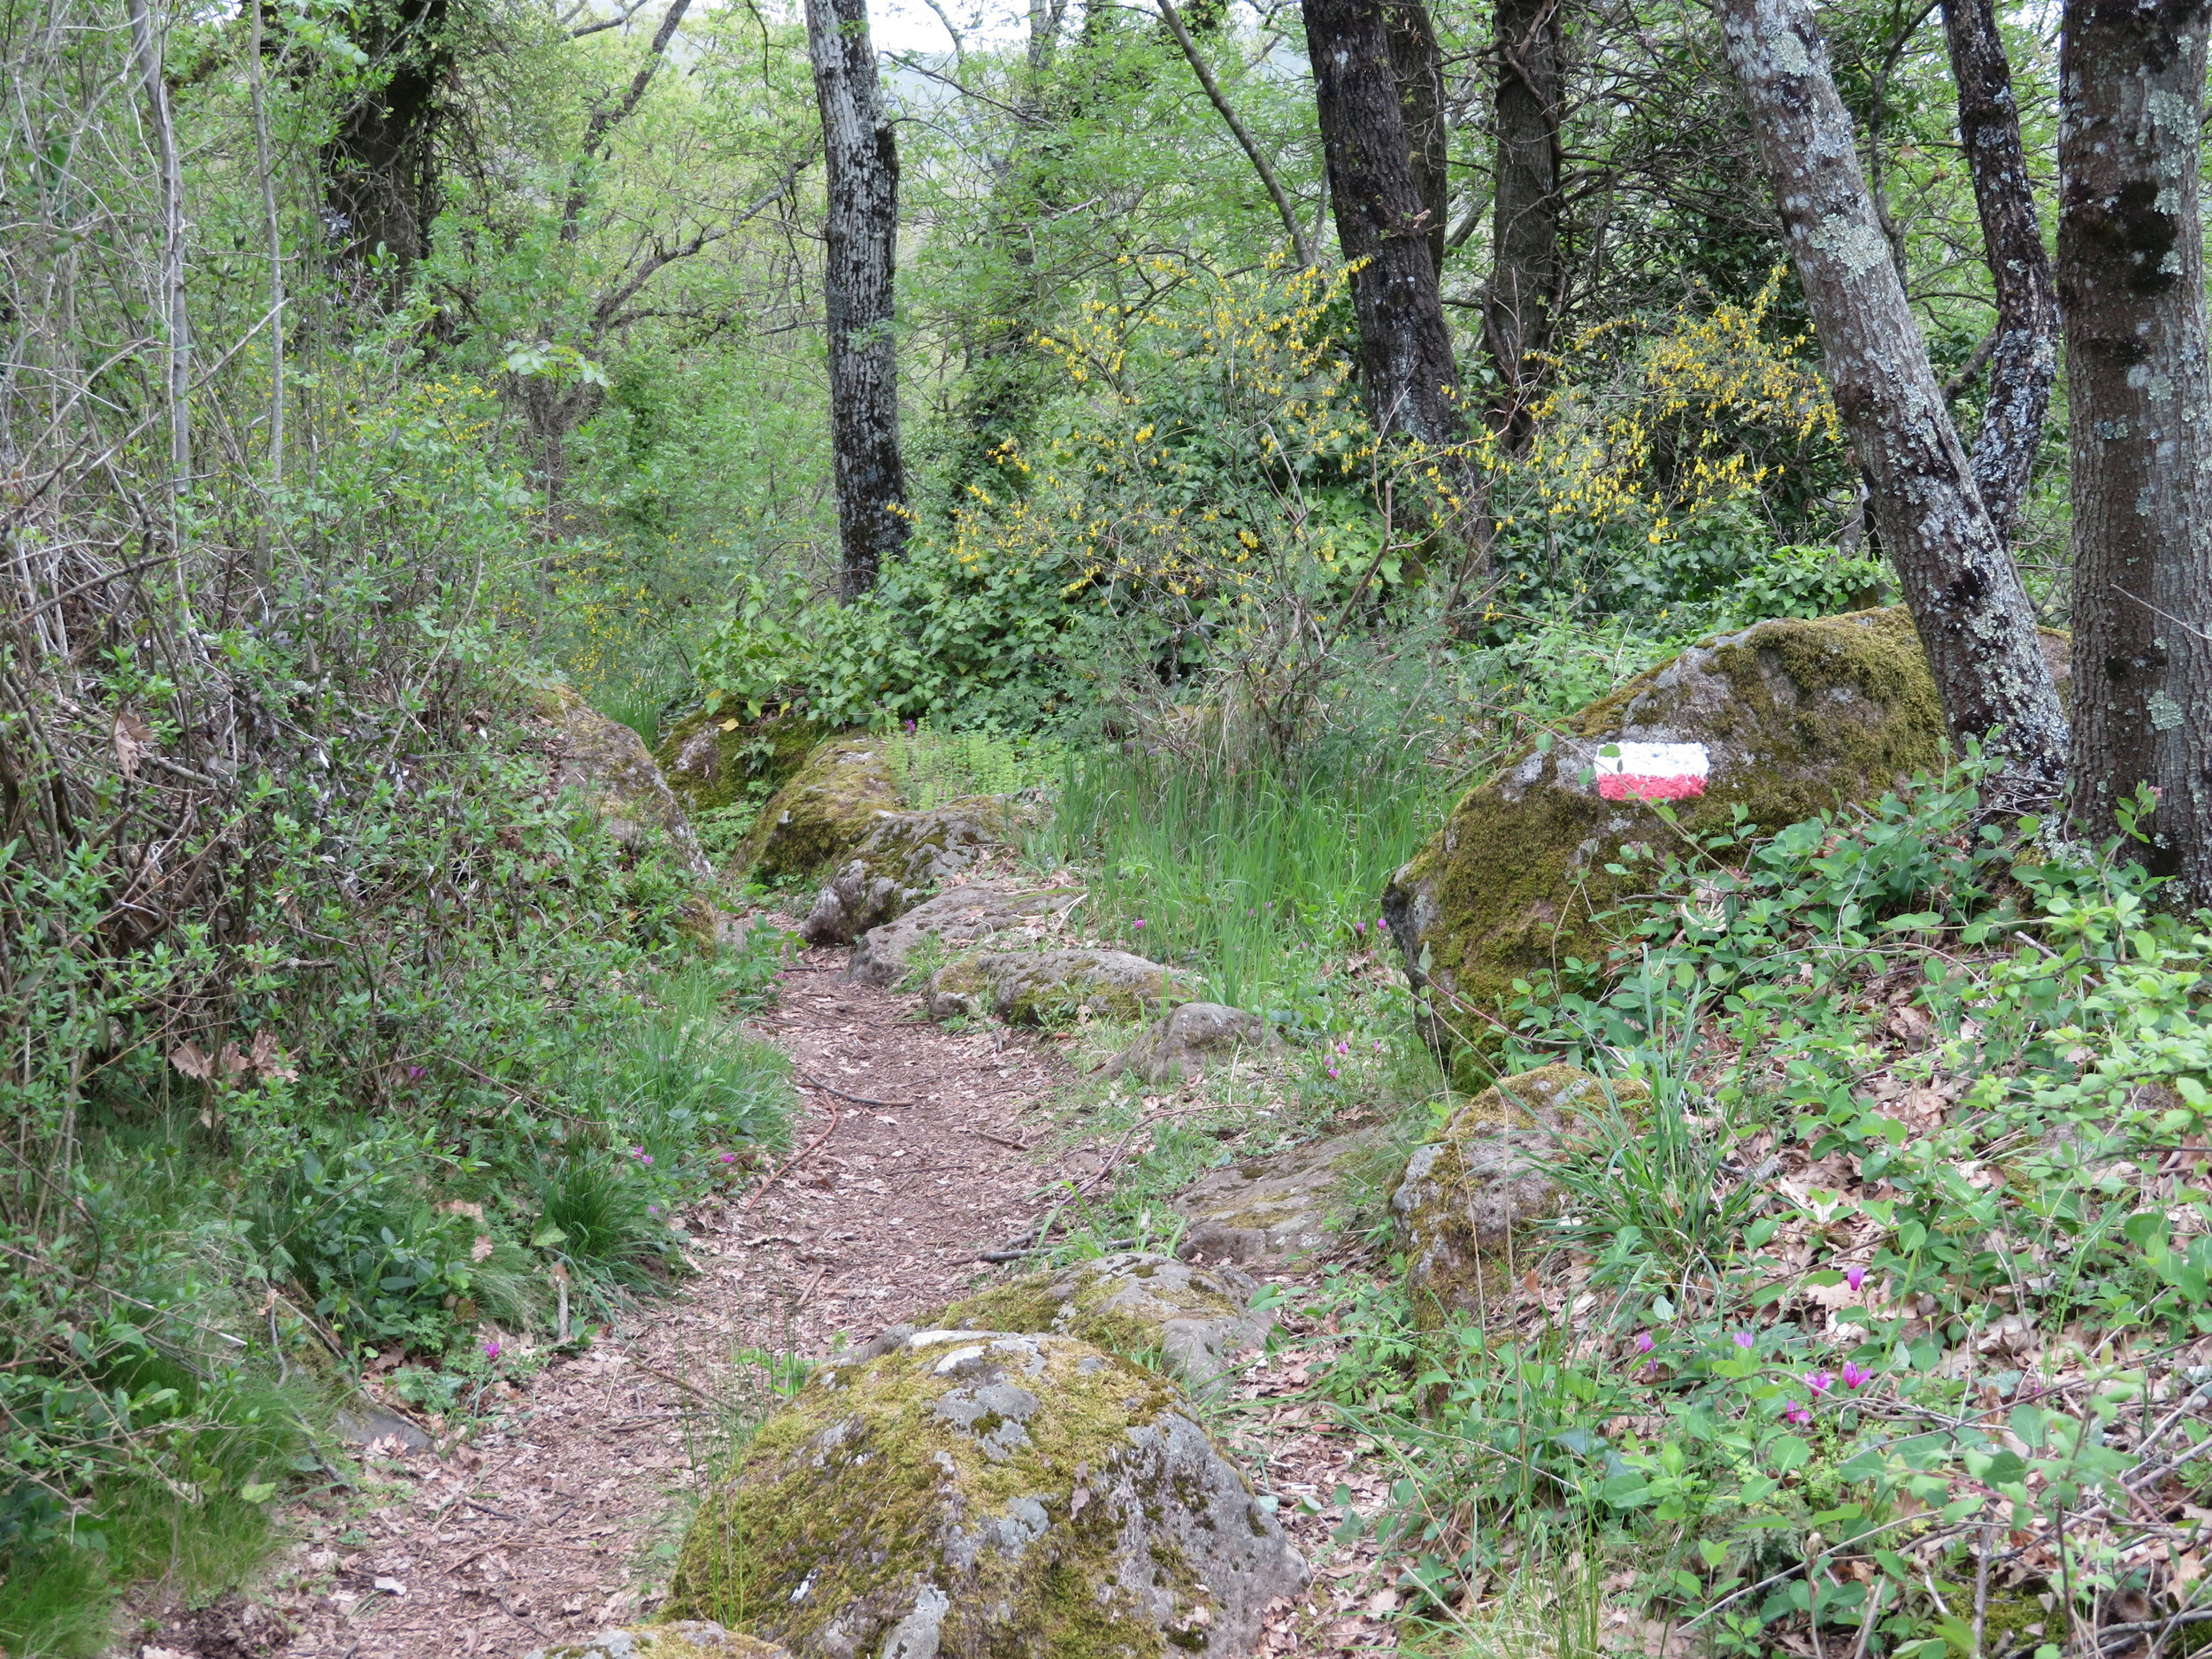 A woodsy Via Francigena path. Note the red/white trail marker on the mossy rock. We constantly searched for them to insure we were still on the right track.